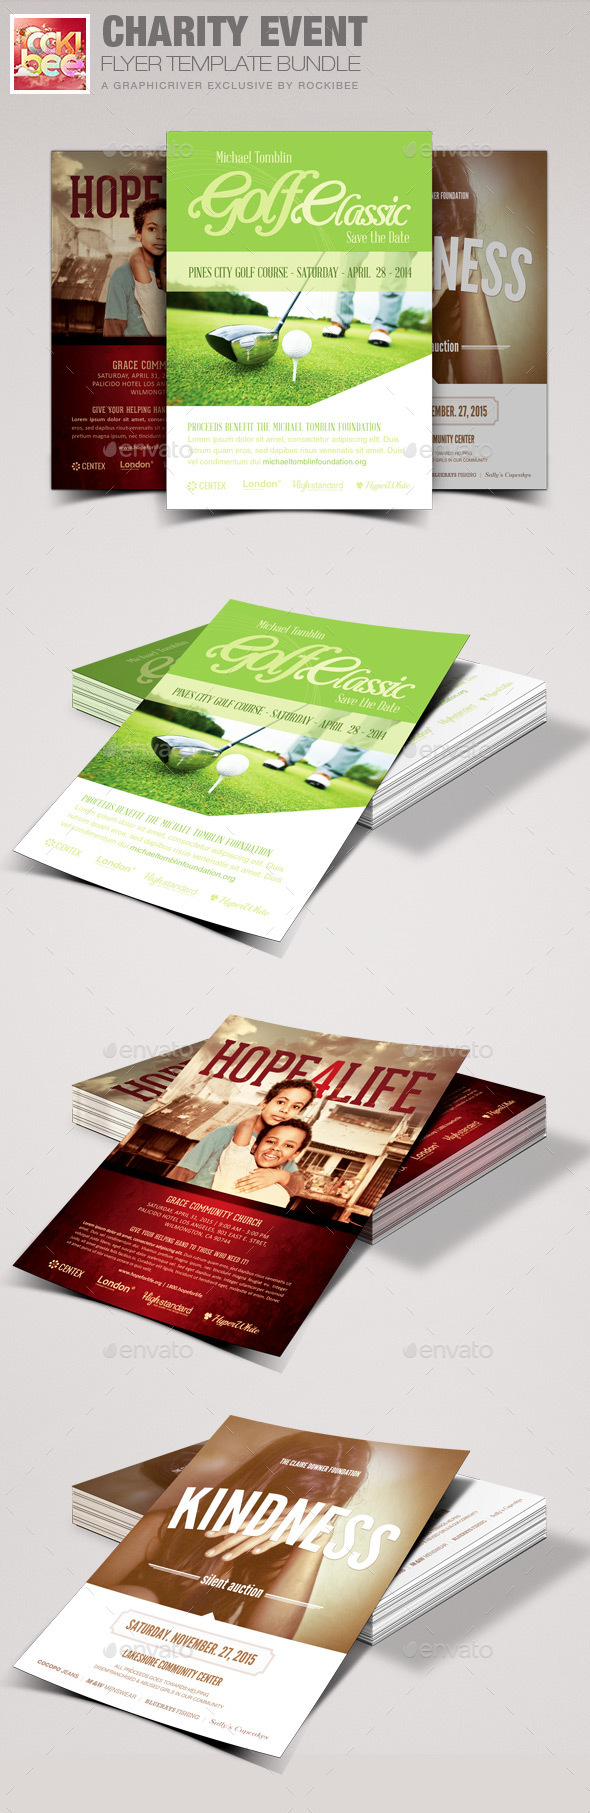 Charity Event Flyer Template Bundle - Events Flyers